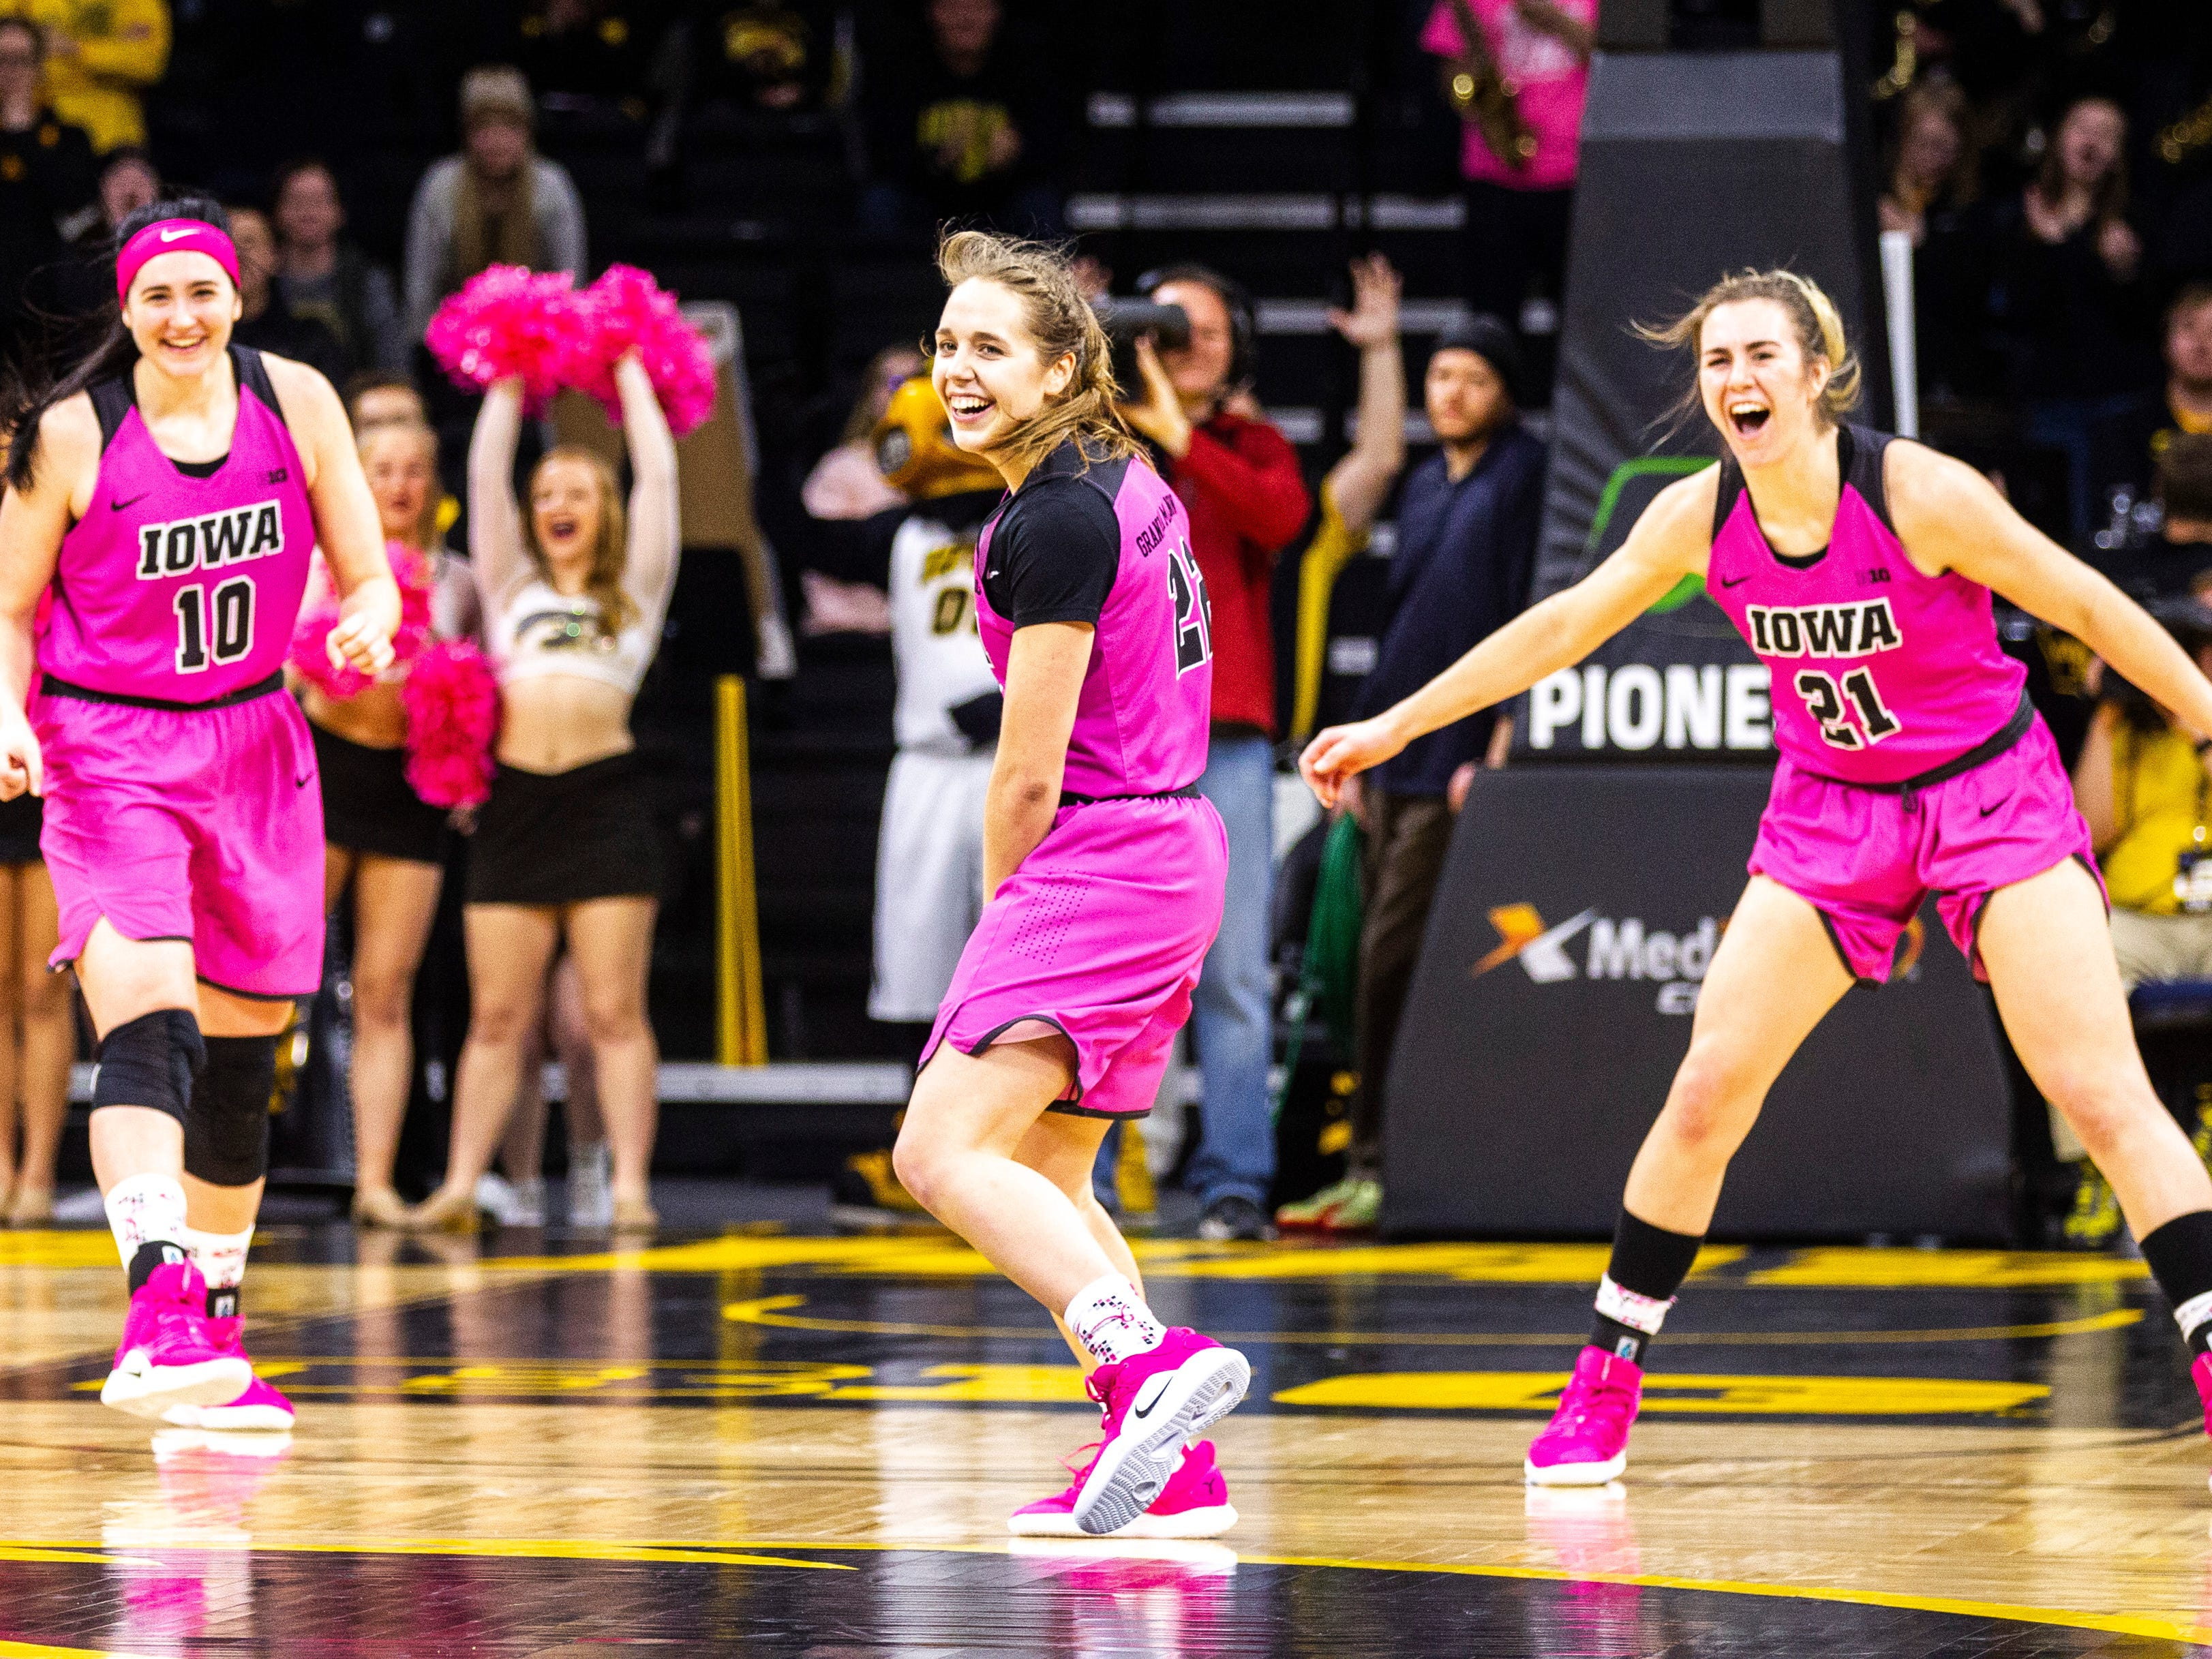 Iowa guard Kathleen Doyle (22) reacts after making a layup while Iowa center Megan Gustafson (10) and Iowa forward Hannah Stewart (21) settle in on defense during a NCAA Big Ten Conference women's basketball game on Sunday, Feb. 17, 2019 at Carver-Hawkeye Arena in Iowa City, Iowa.